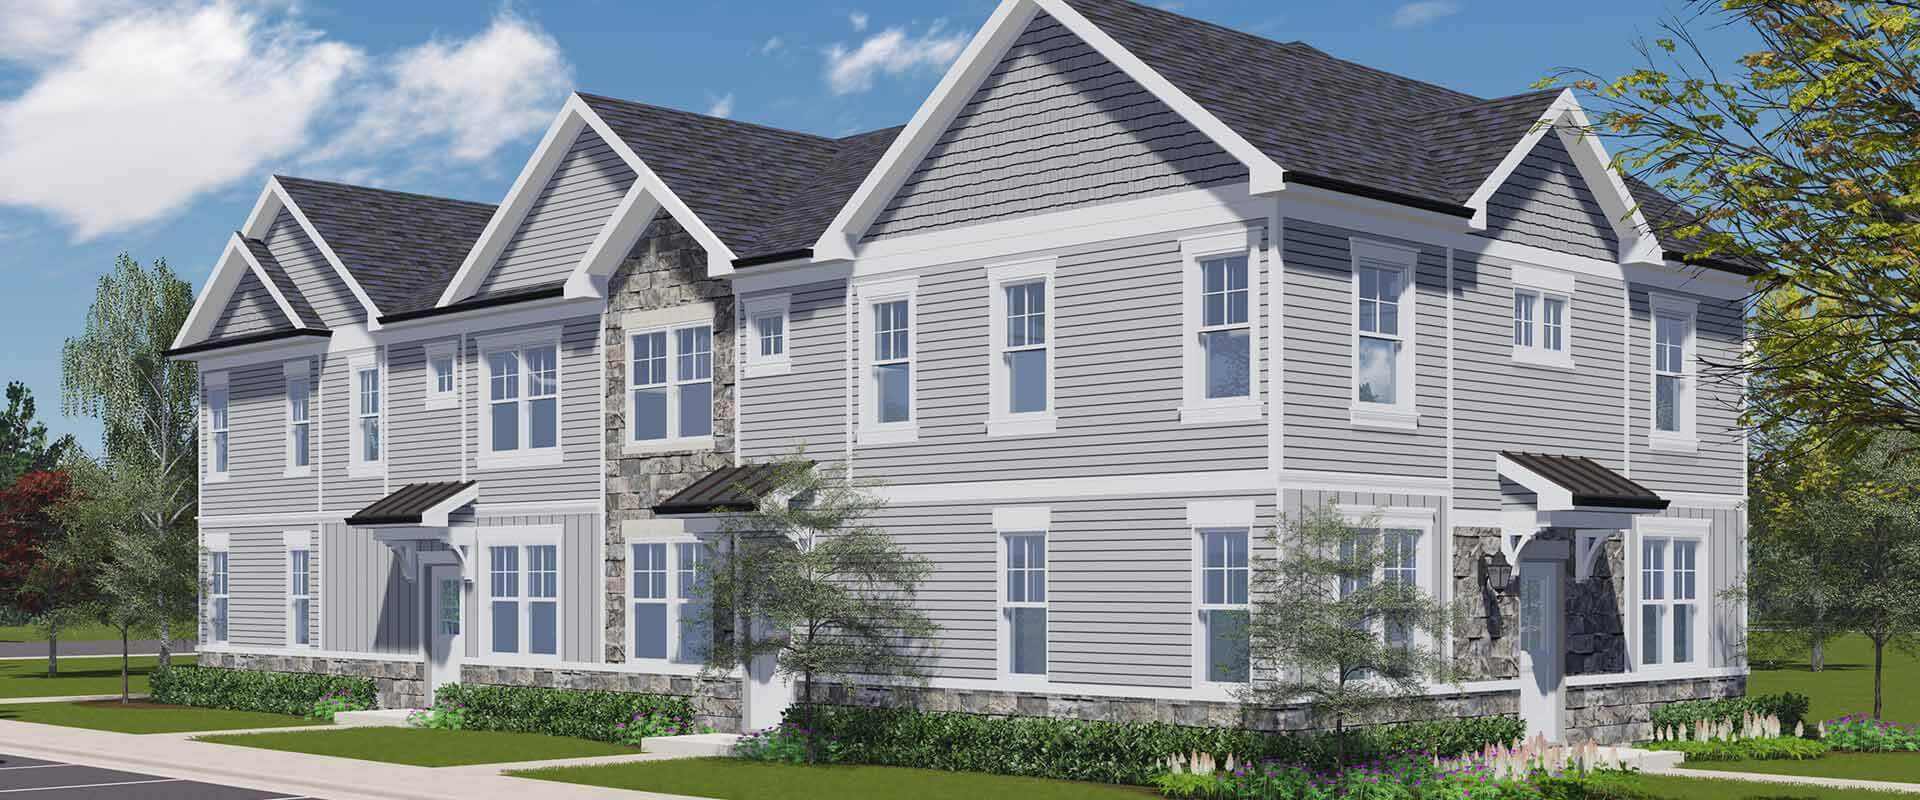 Charlesworth_Hubble_Homes_New_Homes_Boise_0001_Building B color 3 v2.jpg